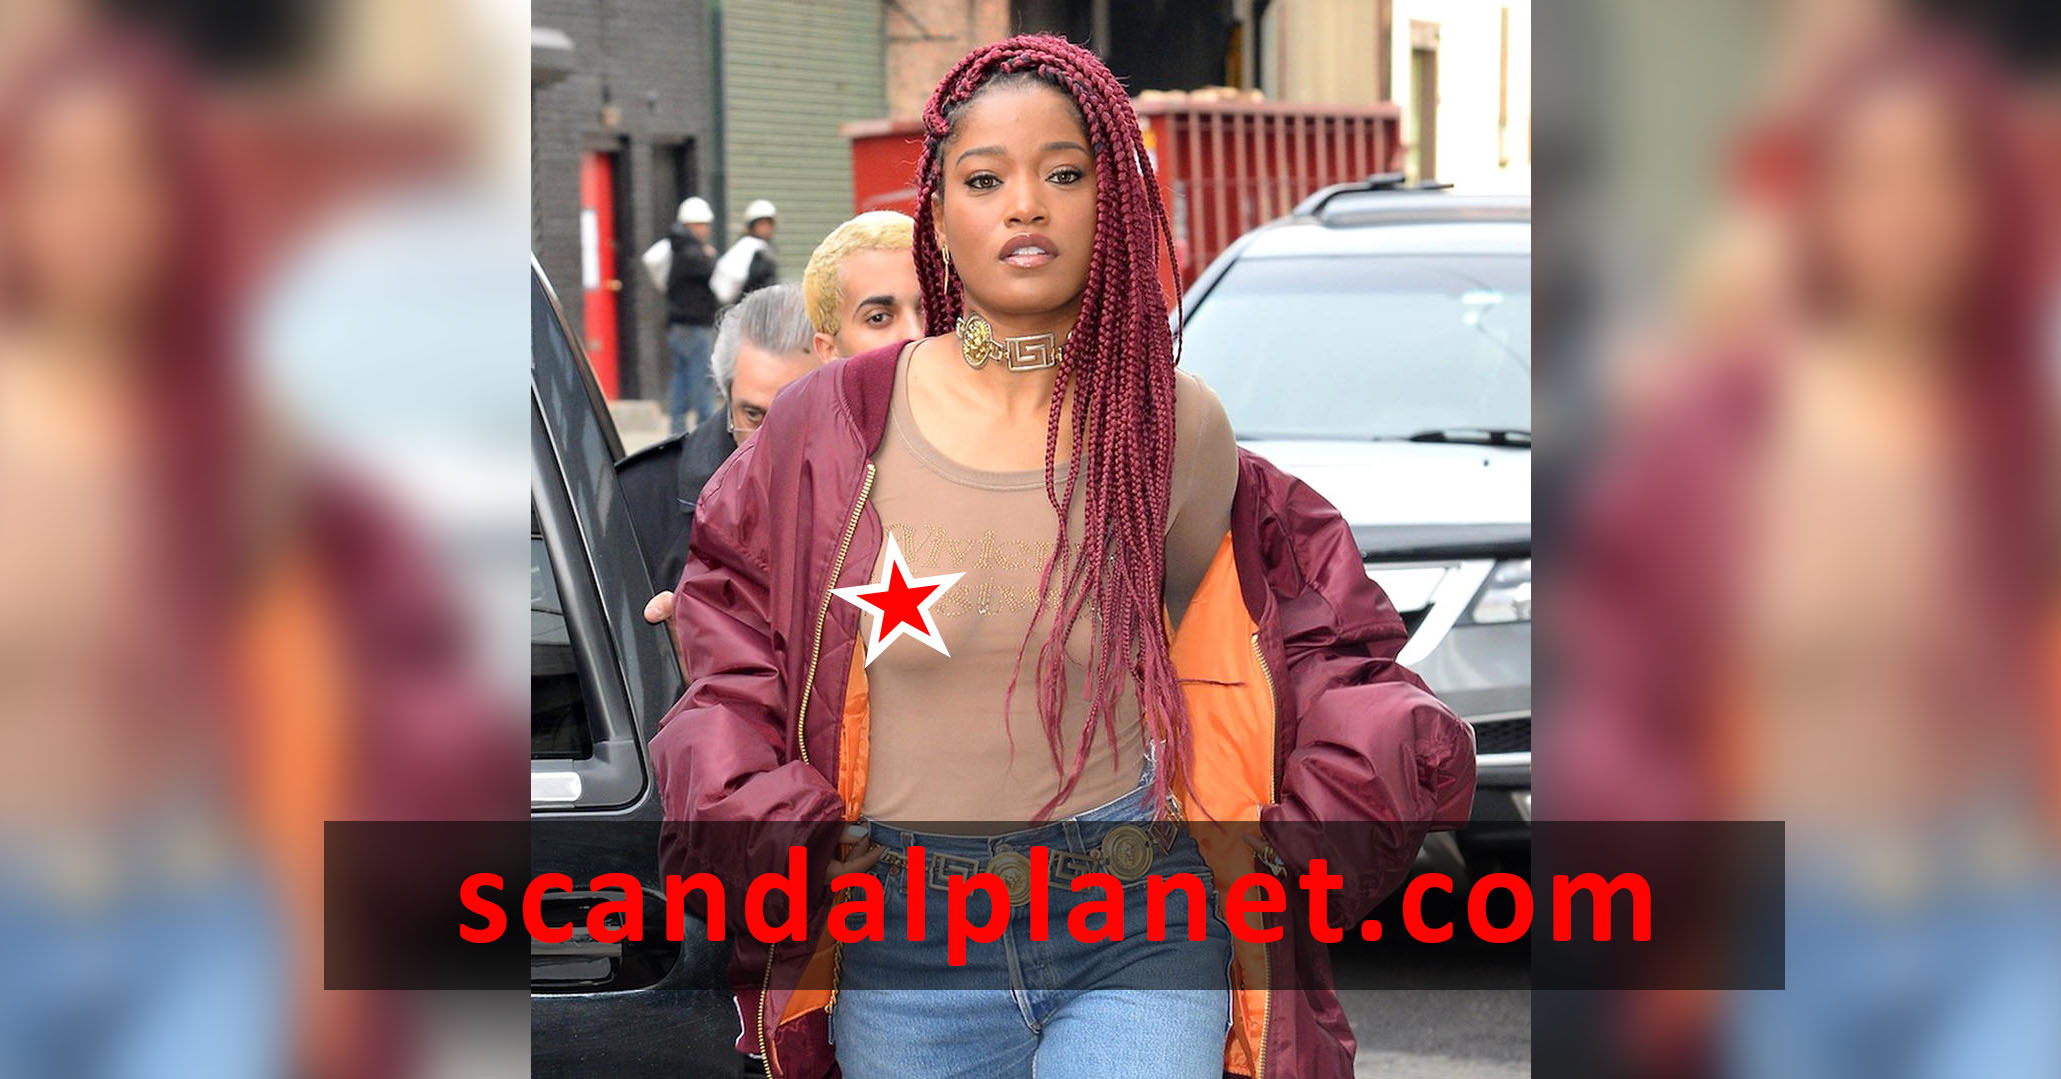 Discussion on this topic: Magdalena frackowiak nude sexy pics, keke-palmer-boobs-see-top/